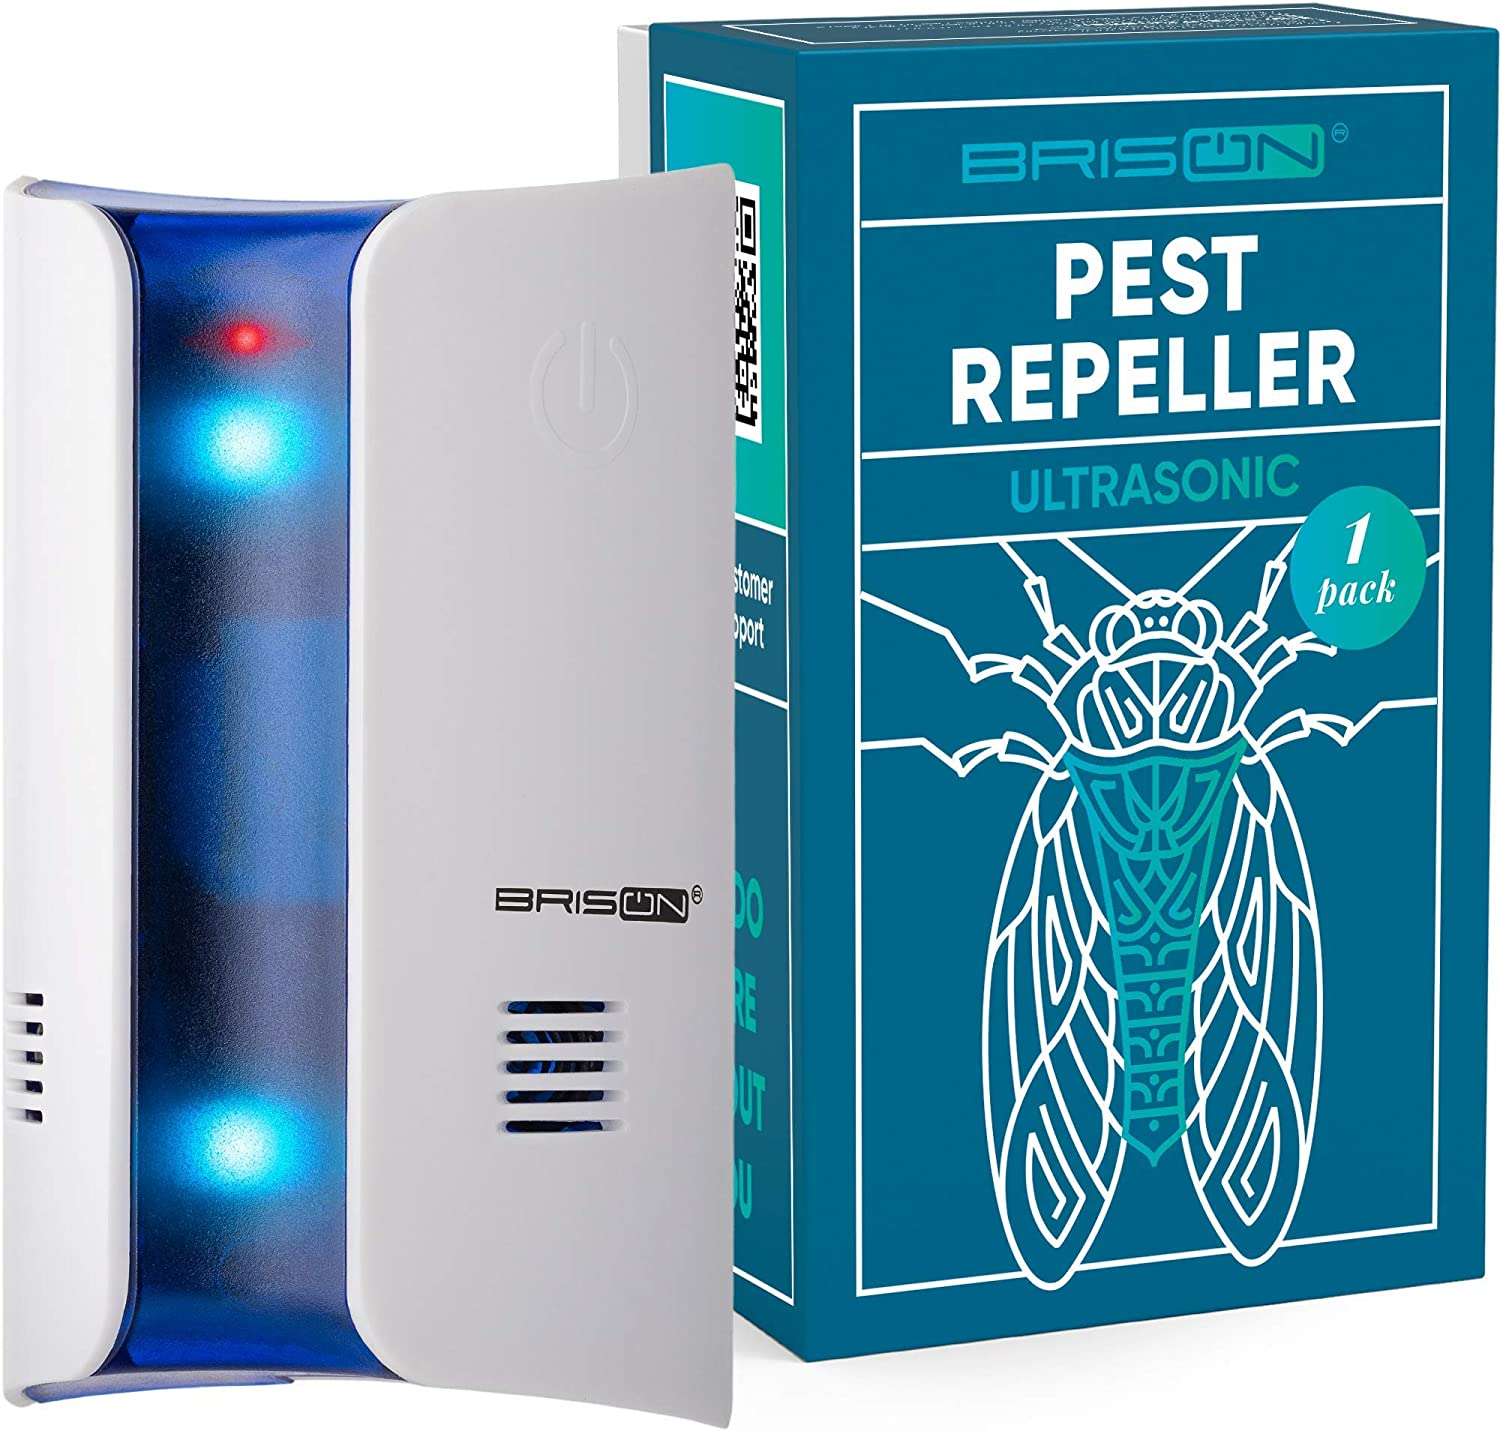 BRISON Ultrasonic Mosquito Repellent -Wall Plug-in Electromagnetic Pest Repeller Prevents & Drives Away Mice Rats Spiders Fruit Flies Fleas Roaches Ants Snakes Rodents - Eco-Friendly & Pet Safe